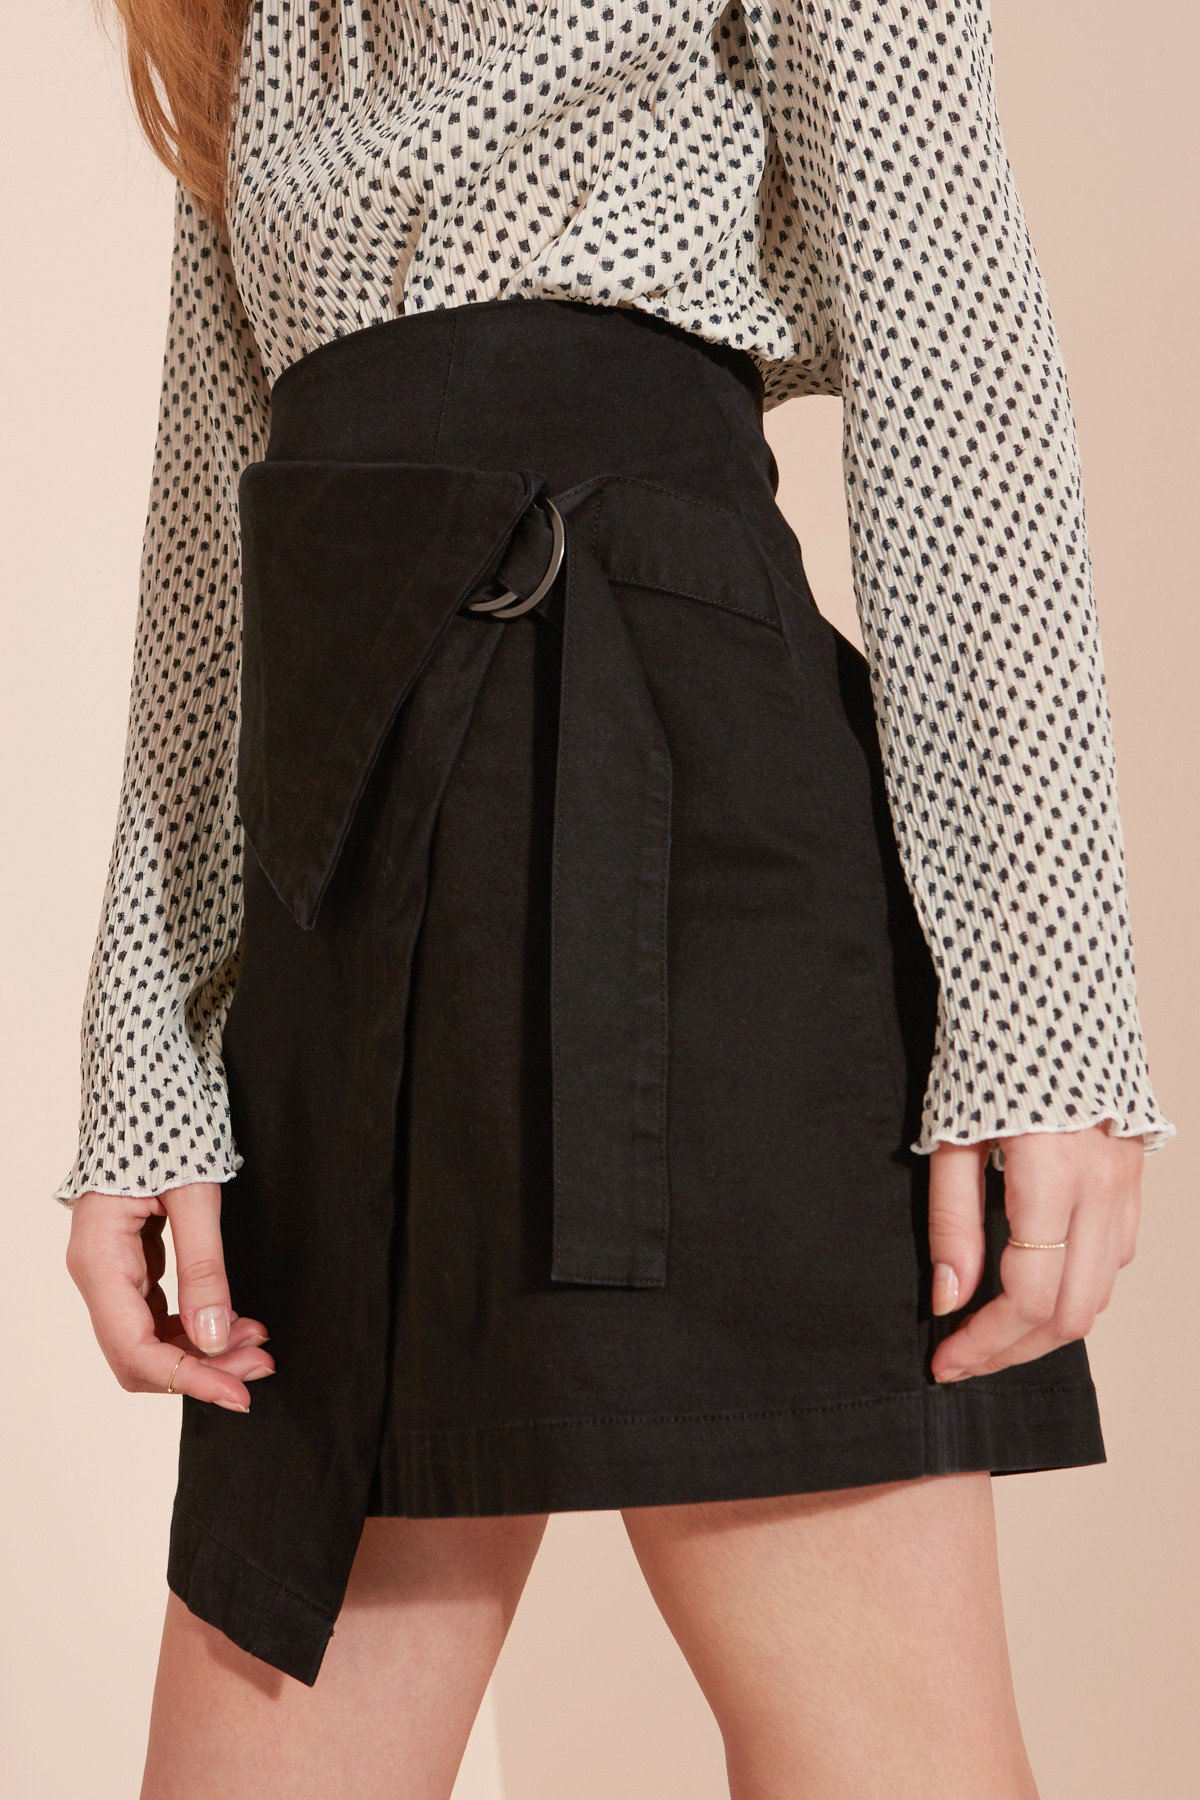 Shop  The Fifth Night Vision L/S Top  +  City Sounds Skirt .